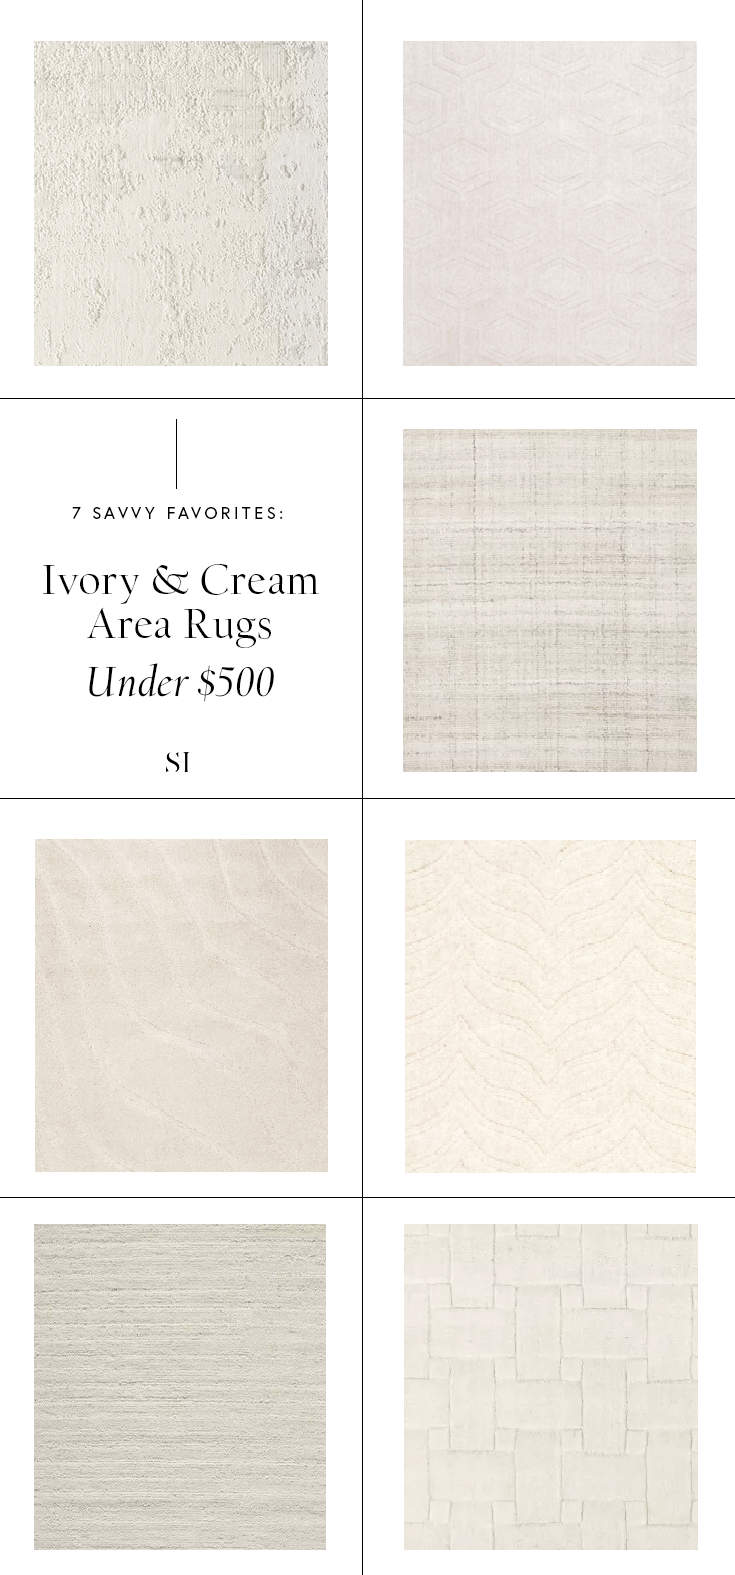 Textured and Minimal White Cream and Ivory Area Rugs under $500.png